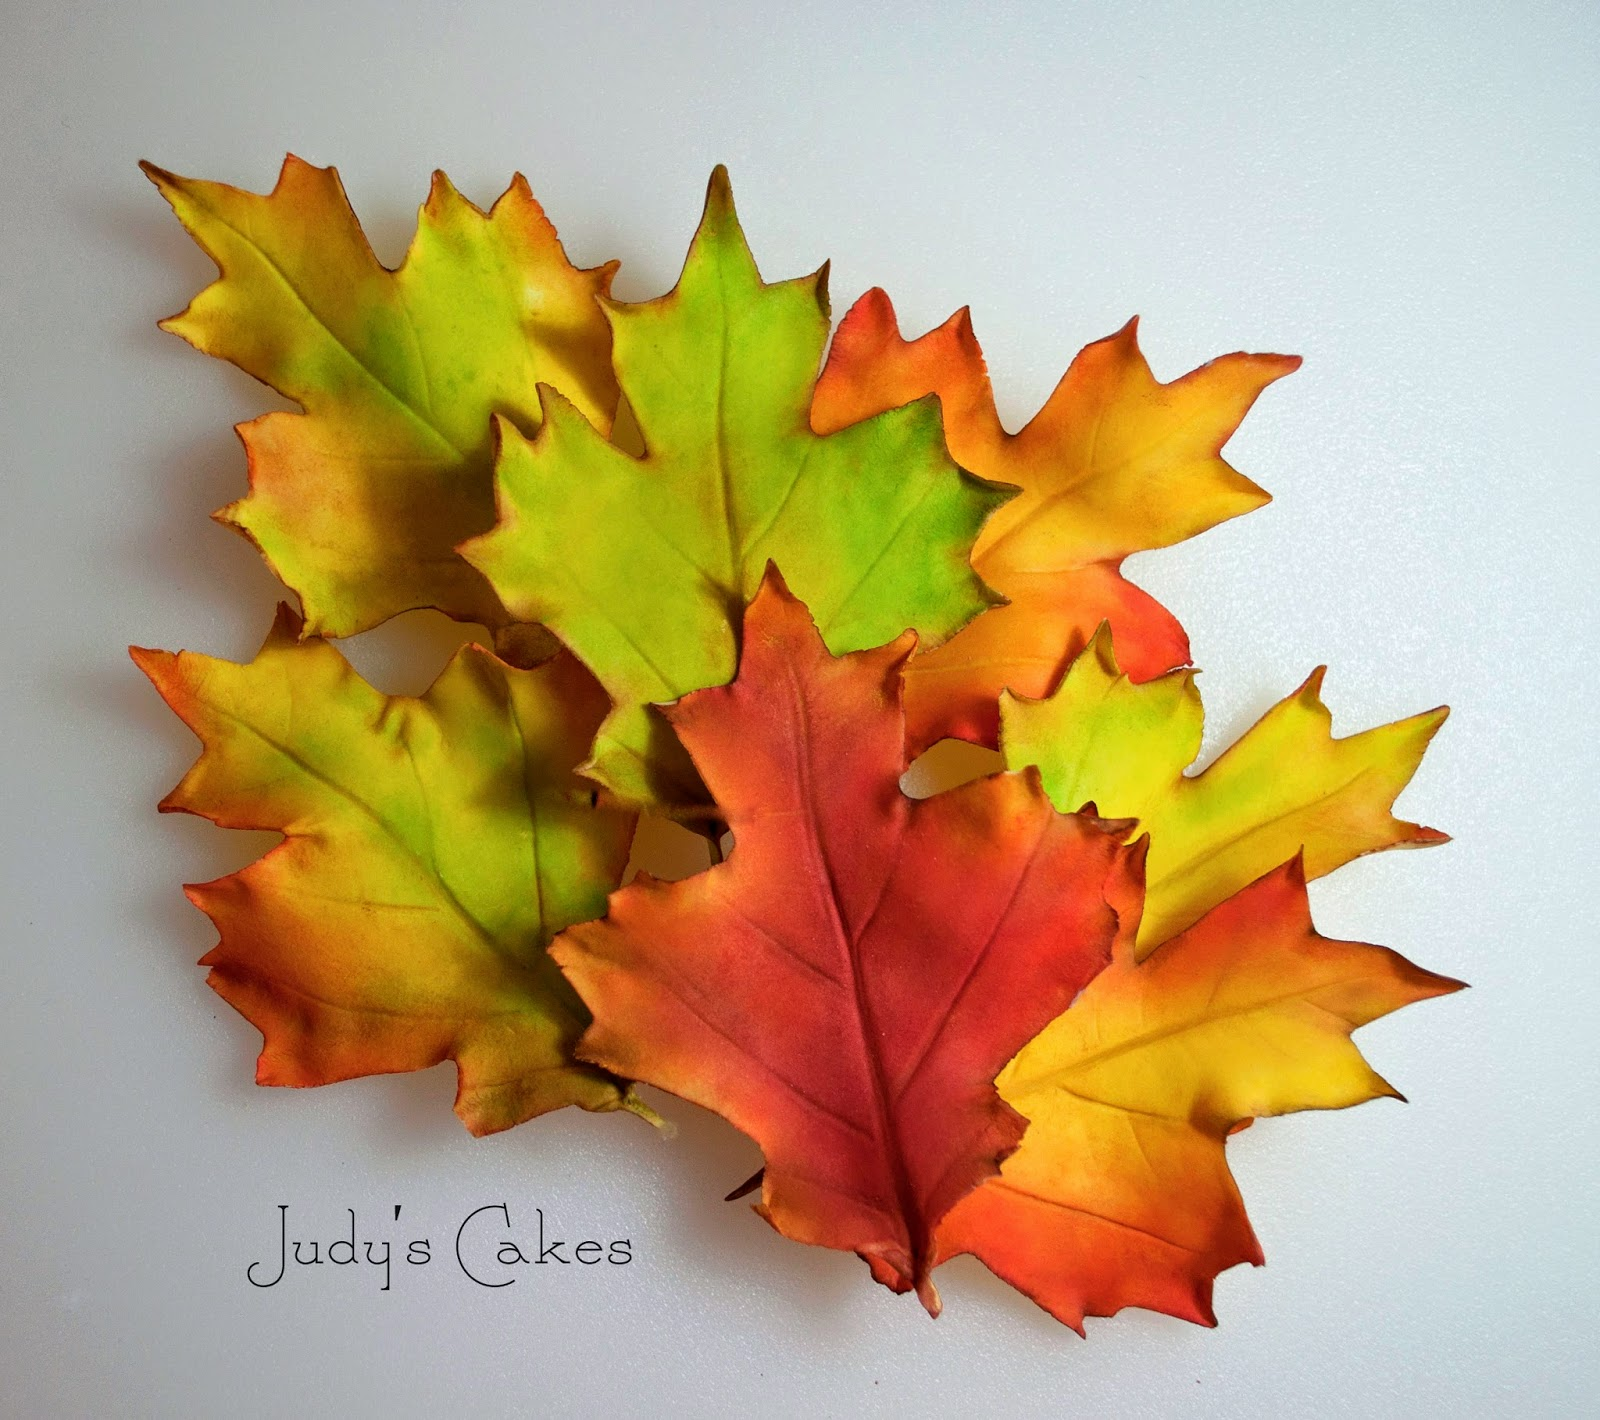 Cake Decorating How To Make A Leaf : Judy s Cakes: How to Make Fall Leaves - Part #2